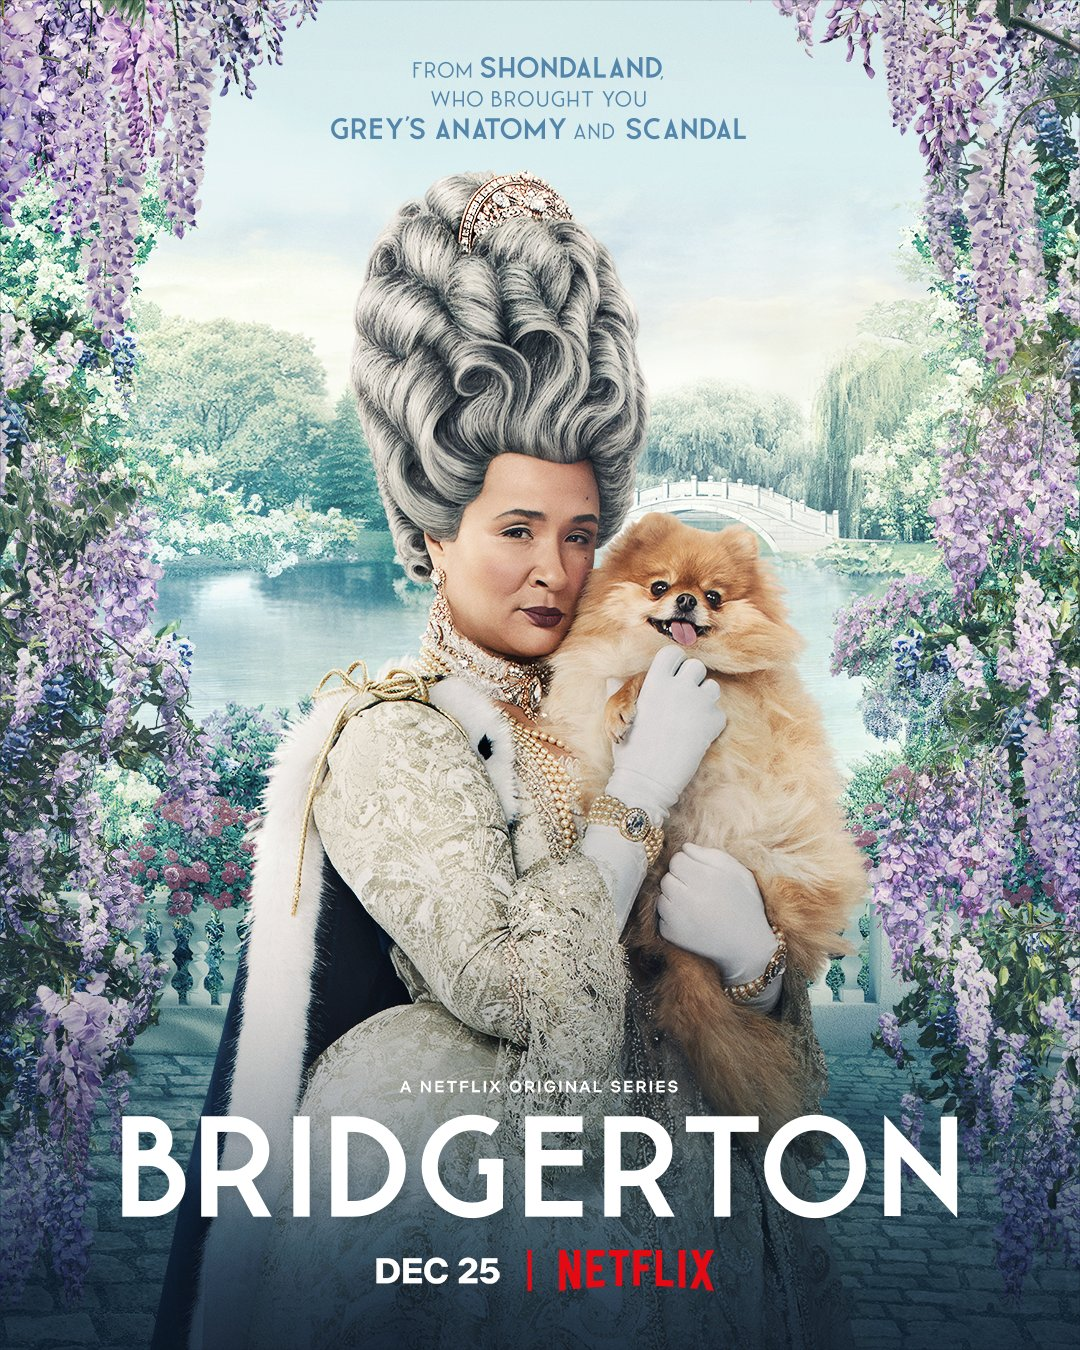 bridgerton-season-1-poster-bridgerton-netflix-series-43618654-1080-1350